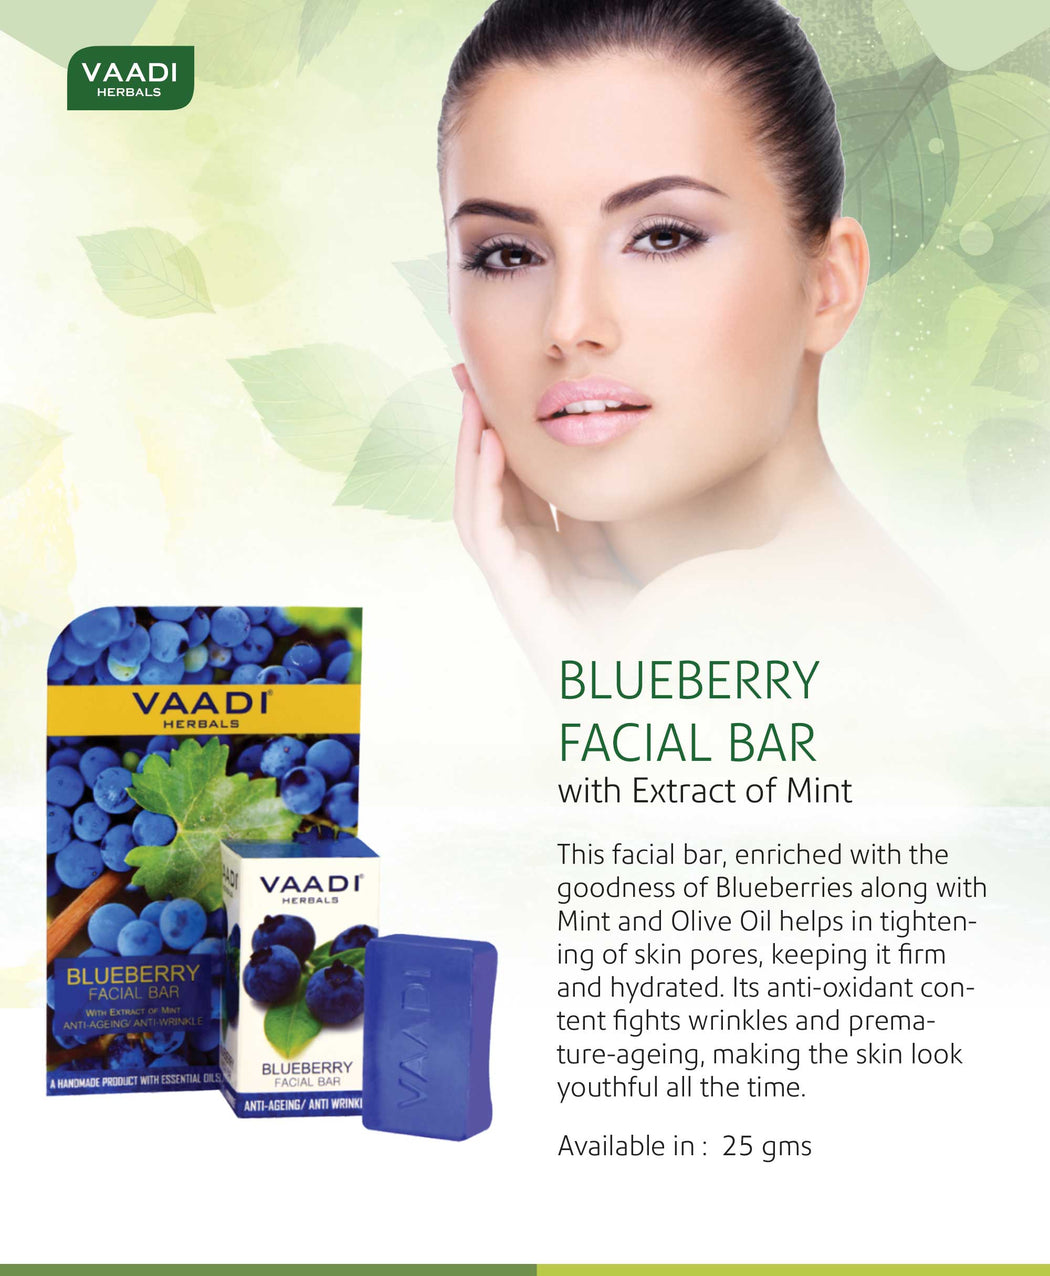 Organic Blueberry Facial Bar with Mint Extract & Olive Oil - Prevents Wrinkles - Makes Skin Youthful (4 x 25 gms/0.9 oz)